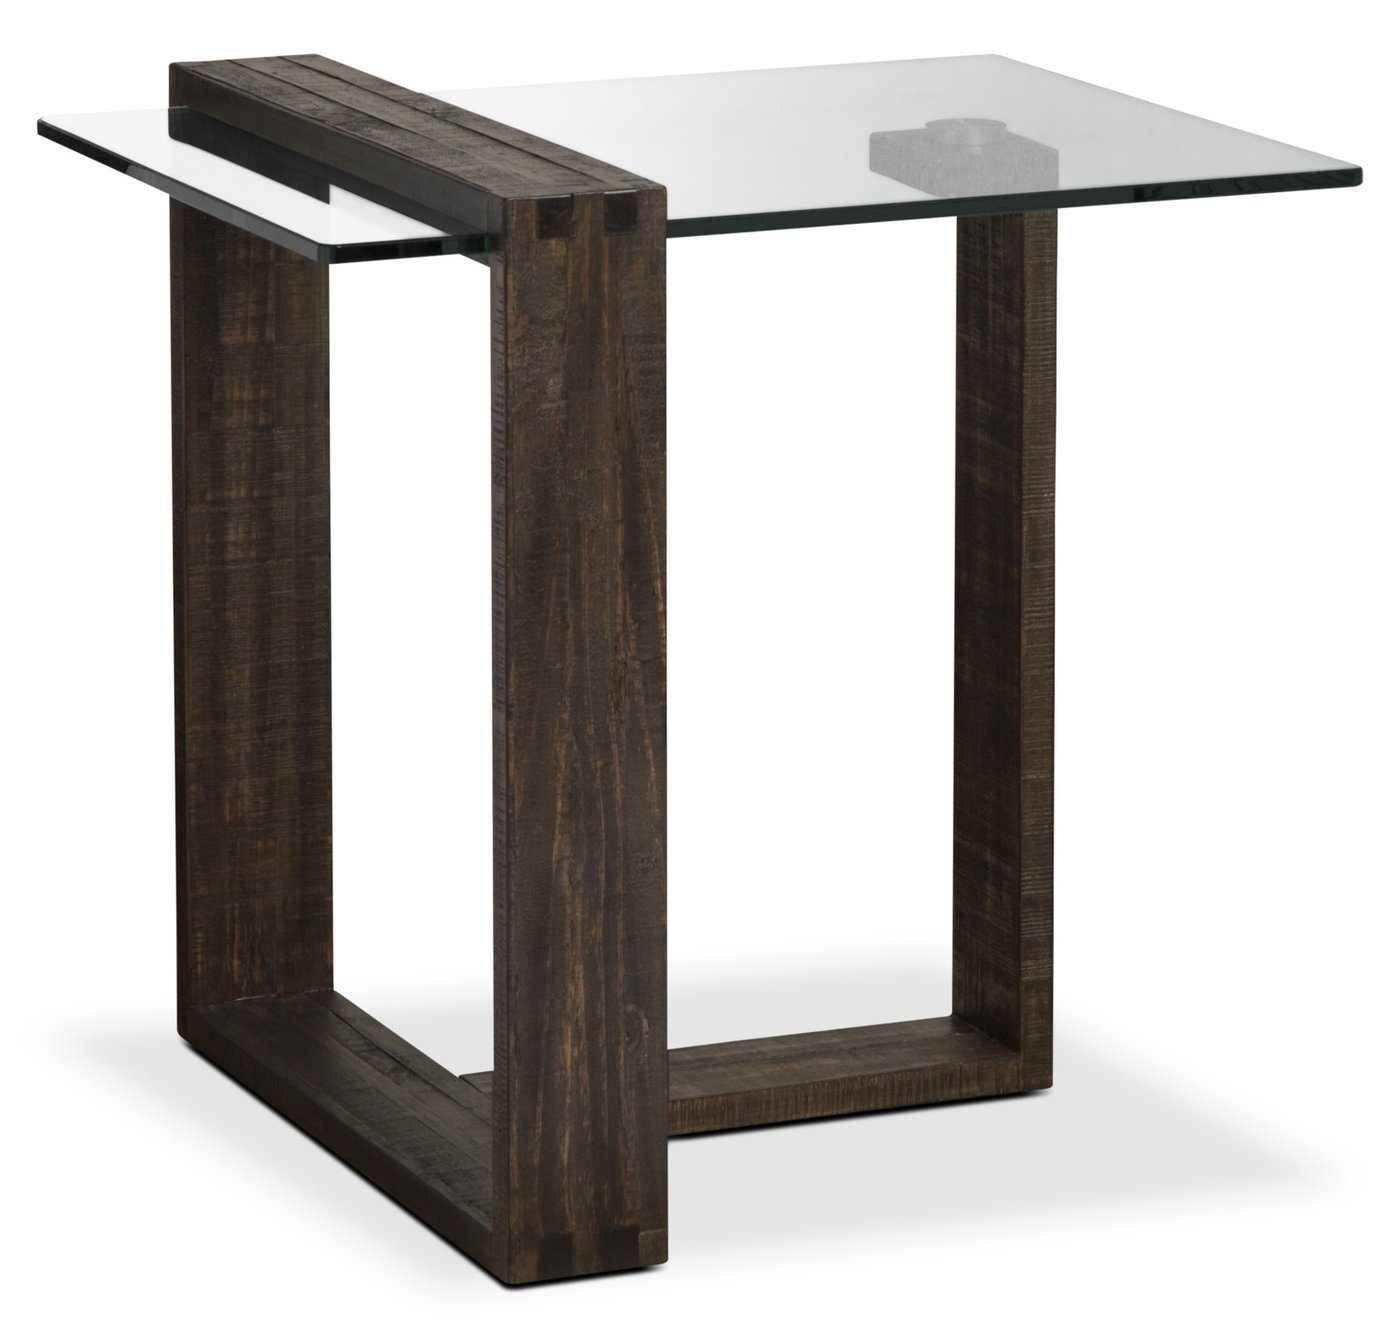 calistoga modern end table the brick tables bout moderne tap expand night liberty ocean isle dining set conduit furniture sauder hardware traditional square coffee steel pipe legs